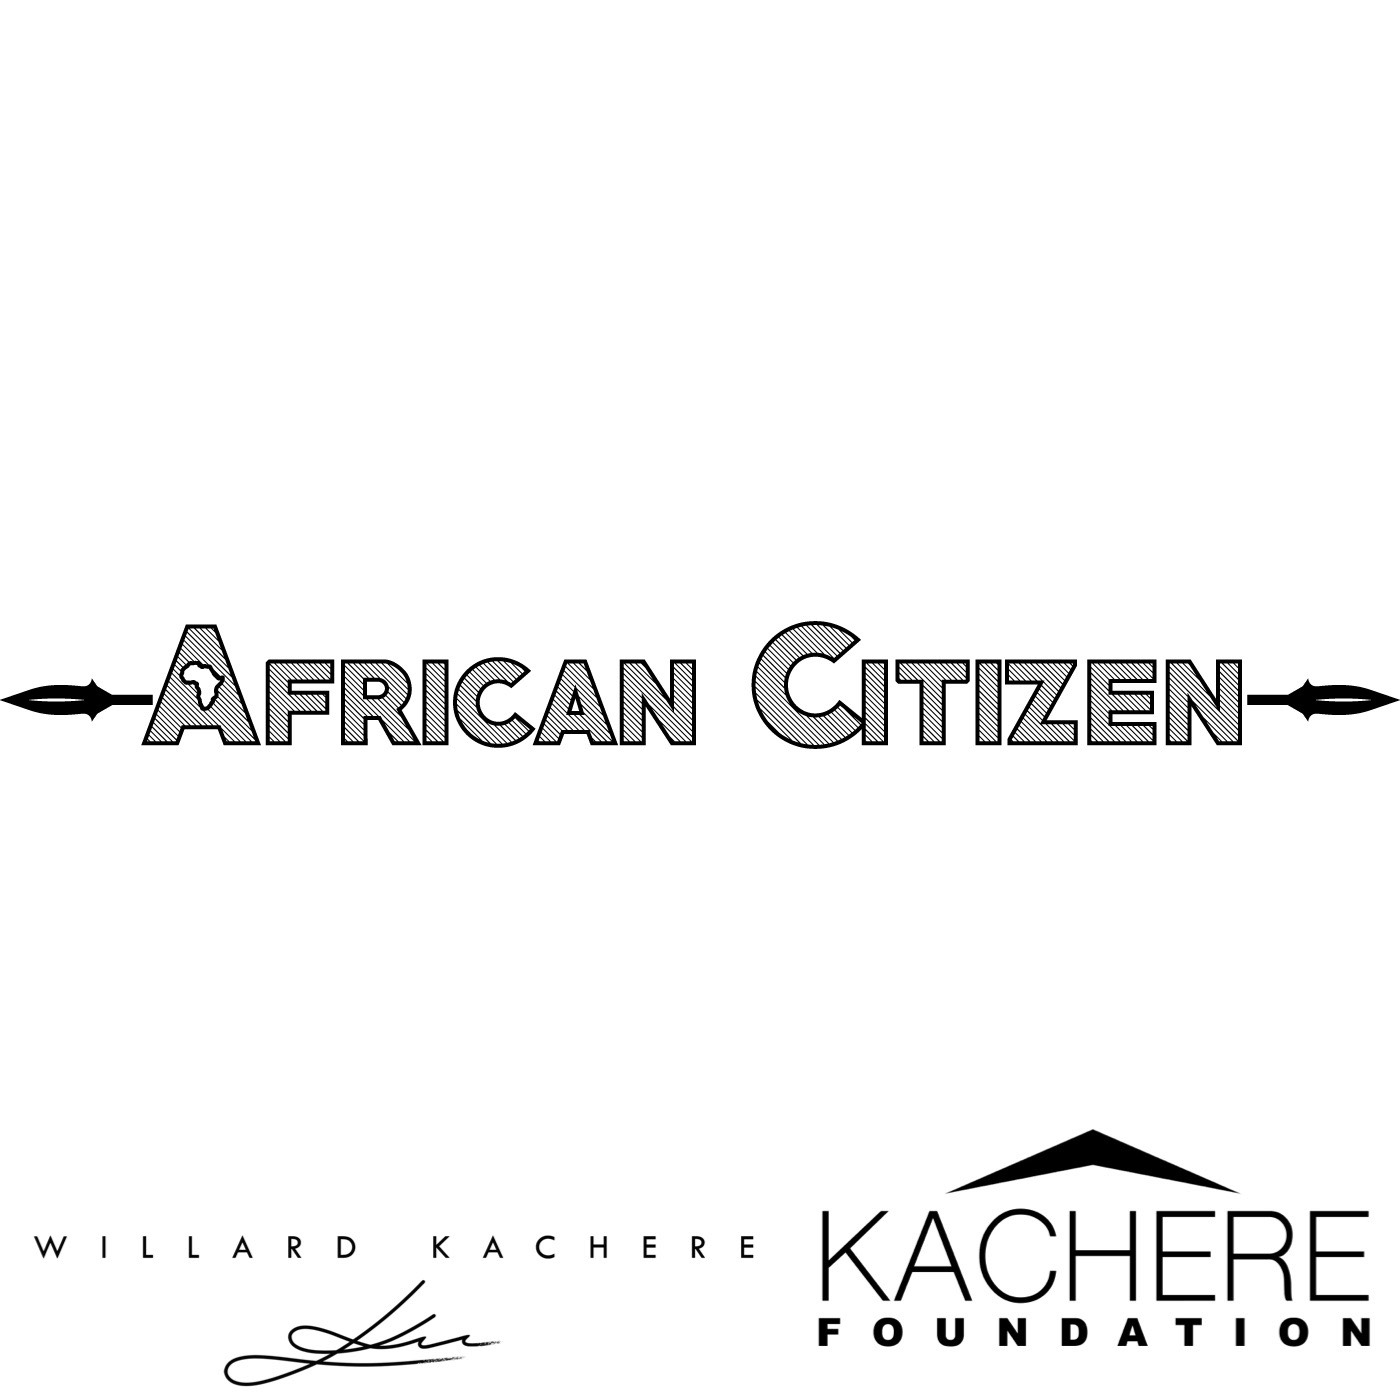 The African Citizen Initiative Creating Opportunities For African Students